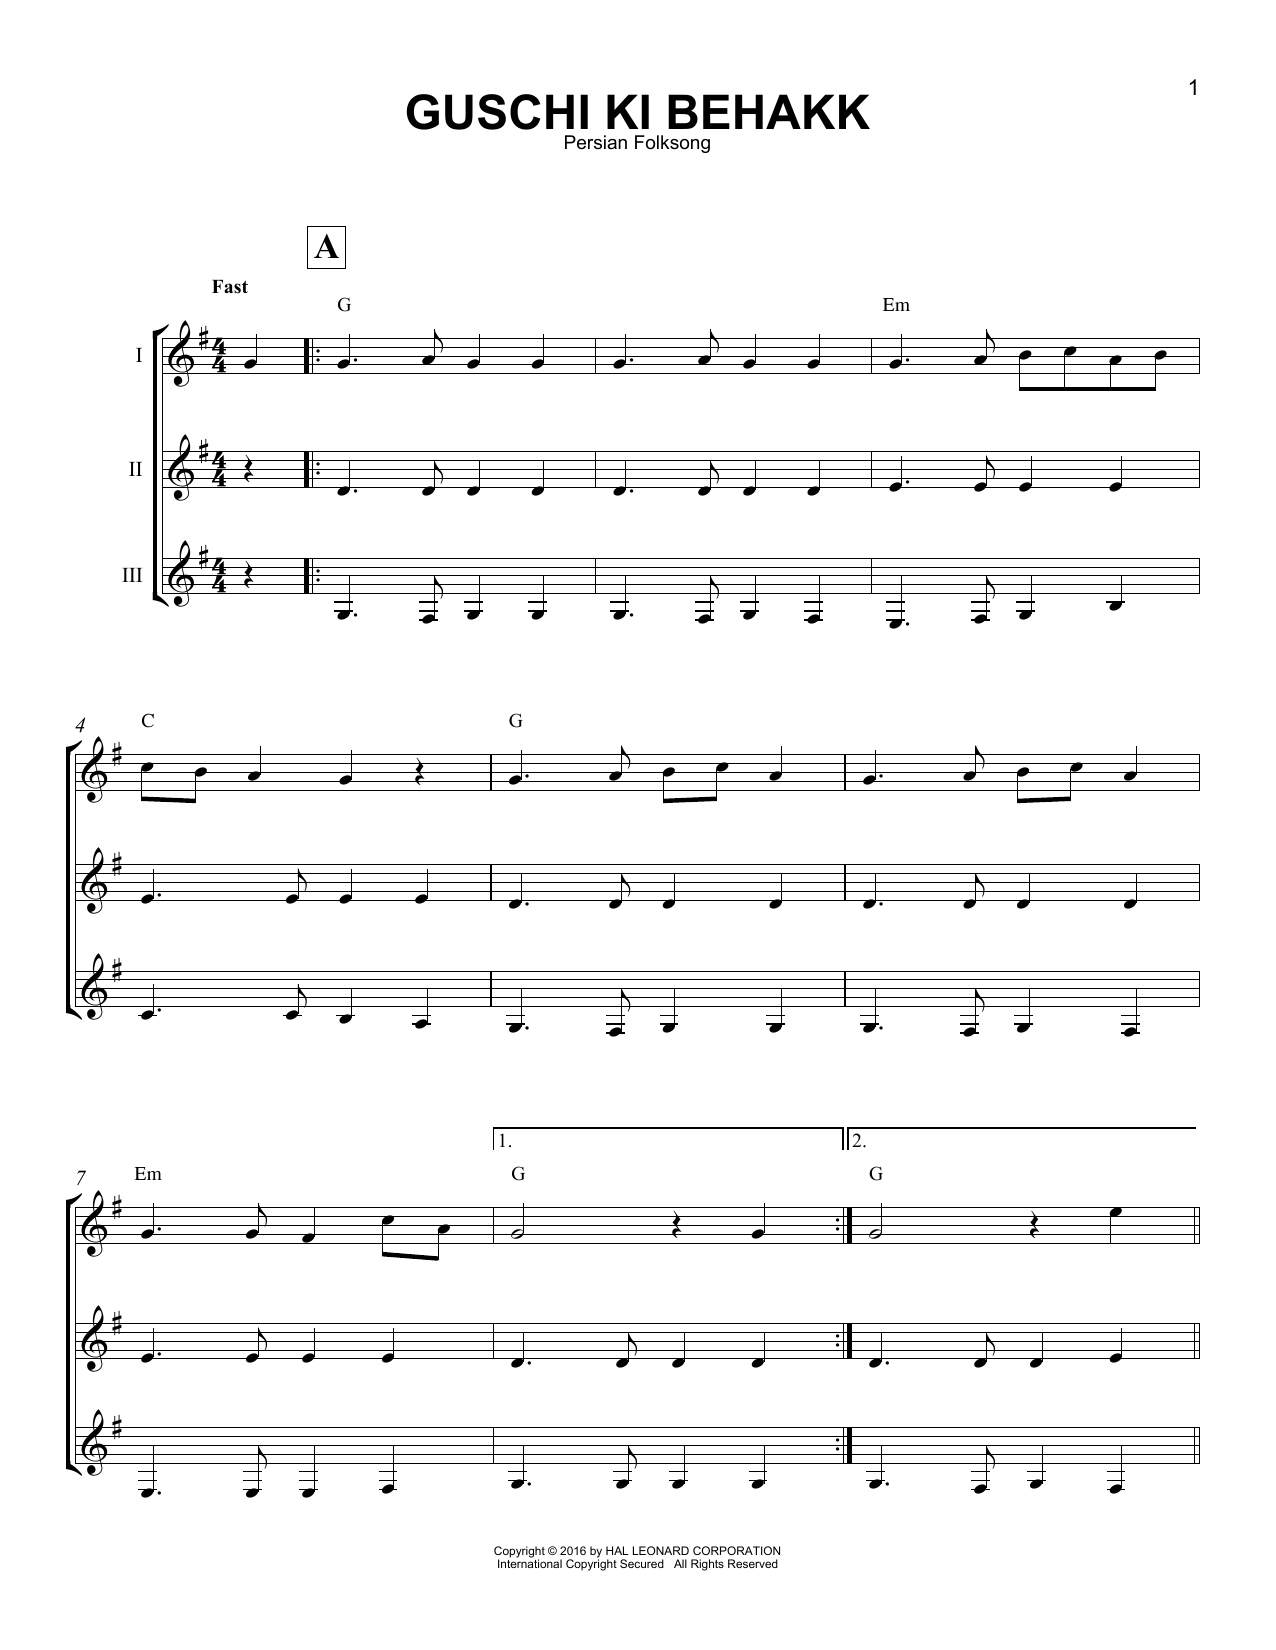 Persian Folksong Guschi Ki Behakk sheet music notes and chords - download printable PDF.